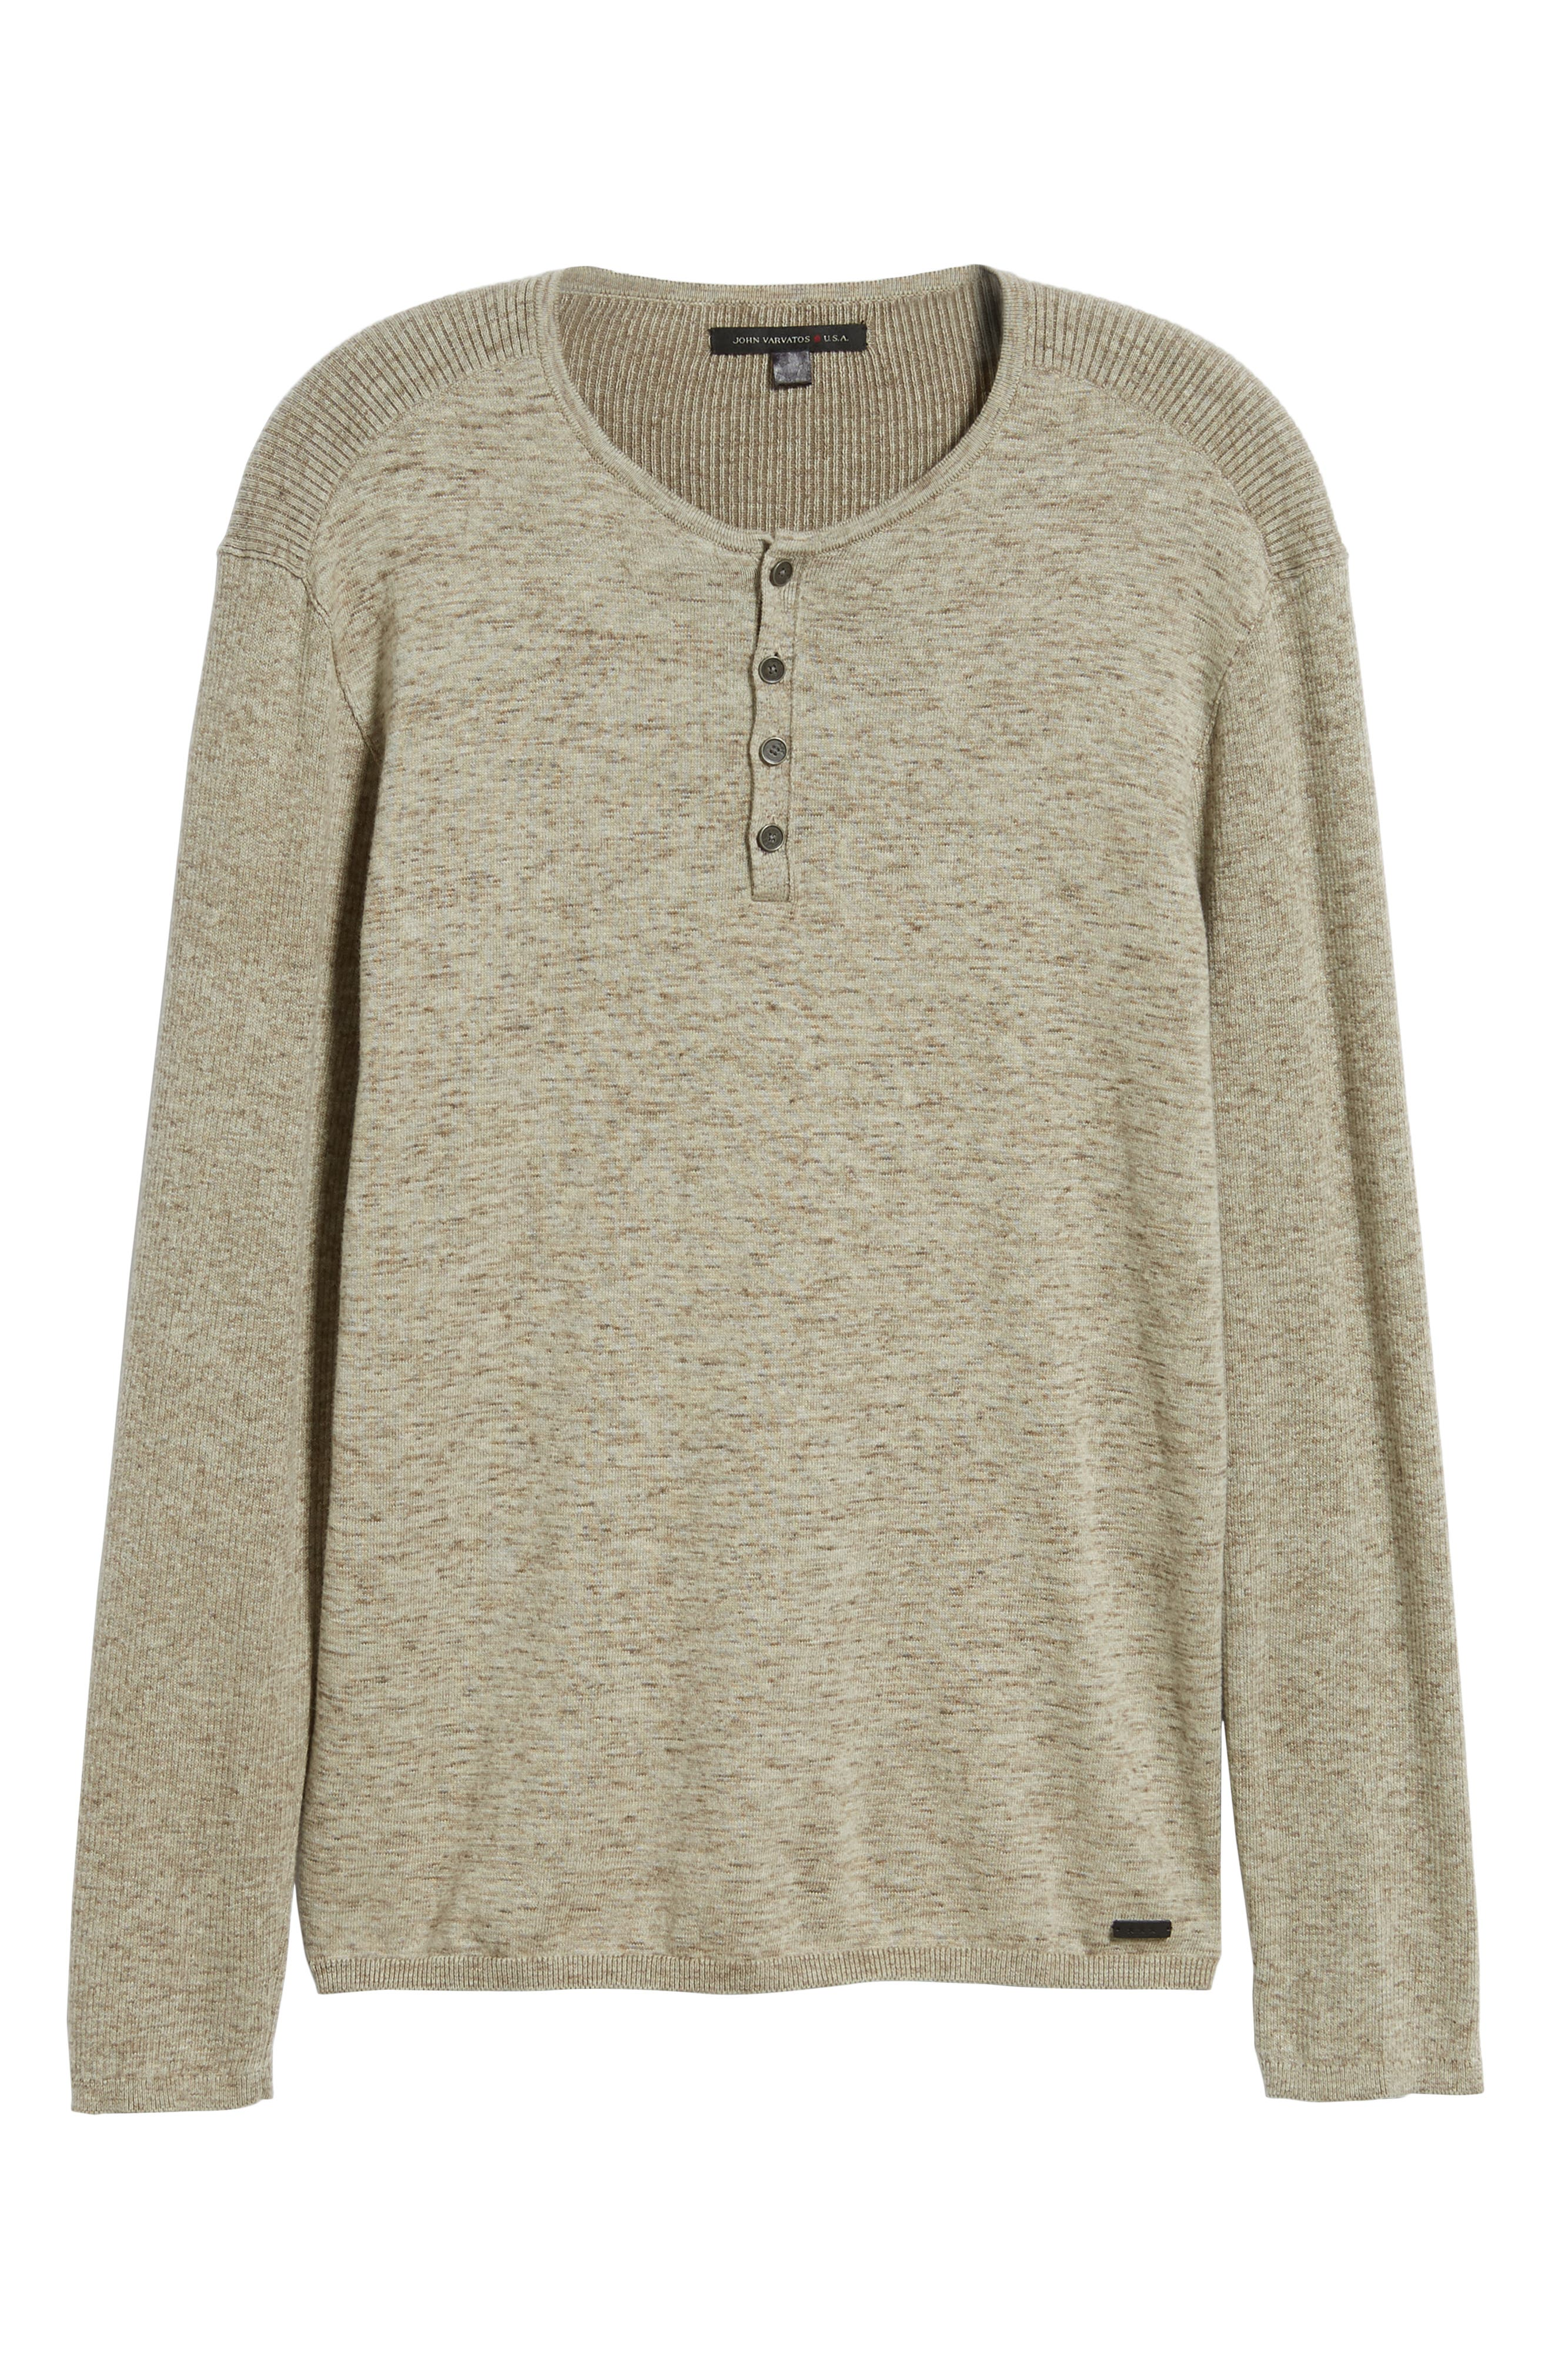 Cotton & Wool Henley Sweater,                             Alternate thumbnail 6, color,                             RYE